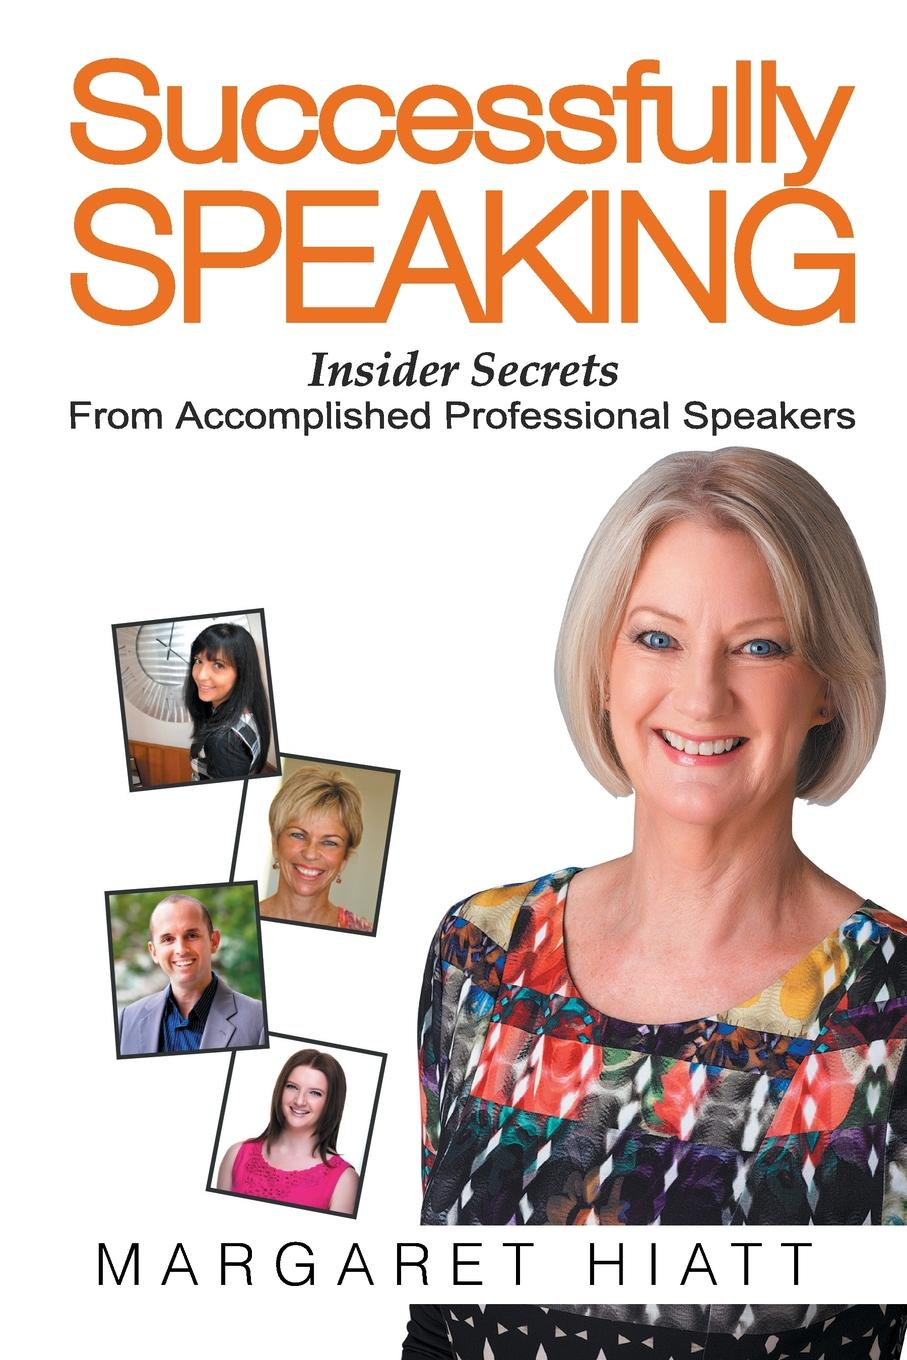 Margaret Hiatt Successfully Speaking. Insider Secrets From Accomplished Professional Speakers bill roiter beyond work how accomplished people retire successfully